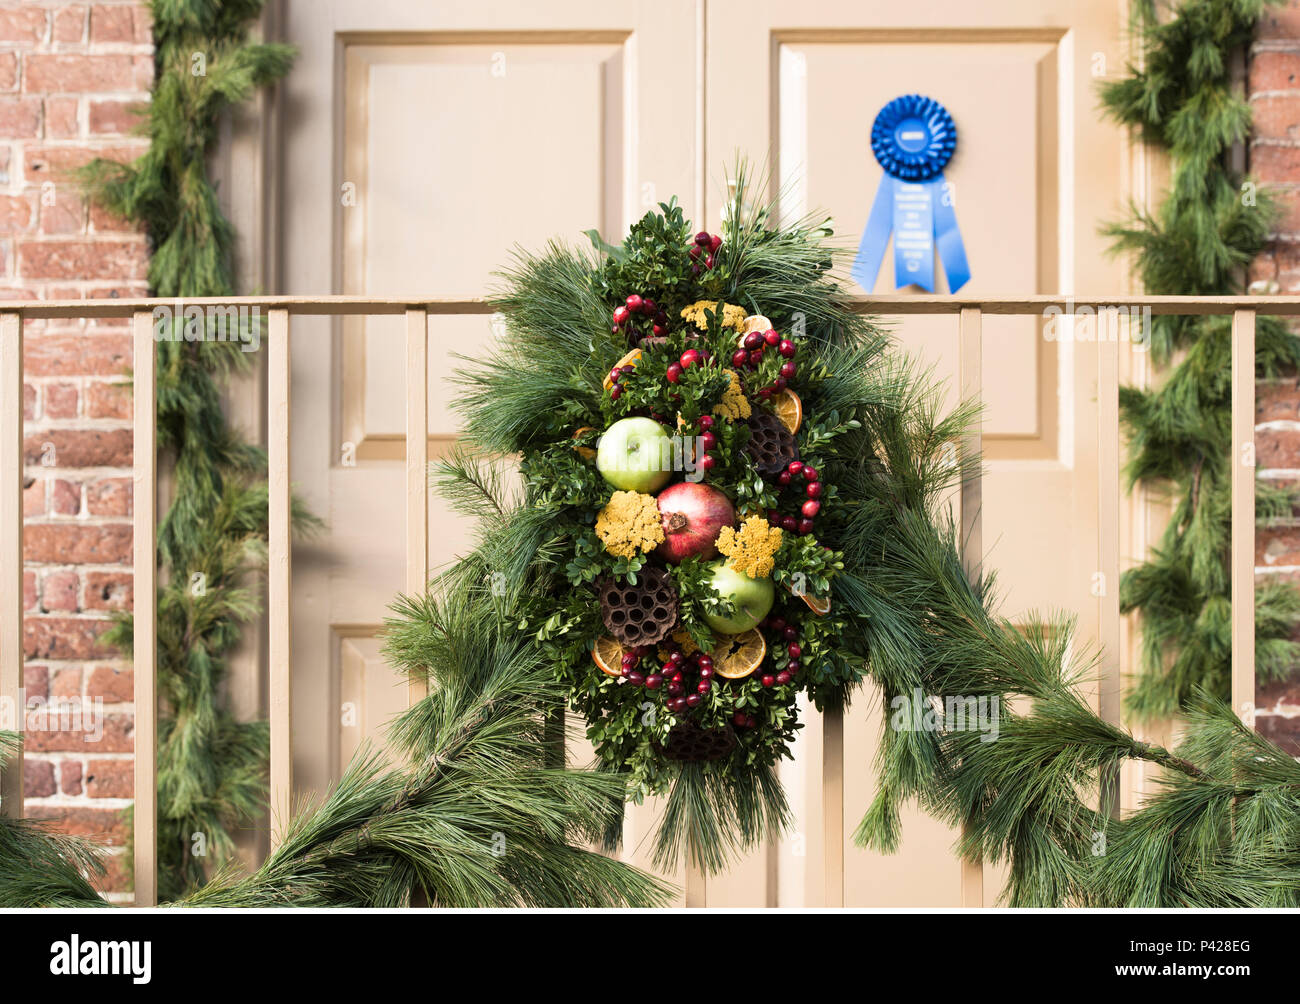 First place, blue ribbon winning Christmas wreath made of lotus pod stems and fresh fruits,  Colonial Williamsburg annual competition display. - Stock Image